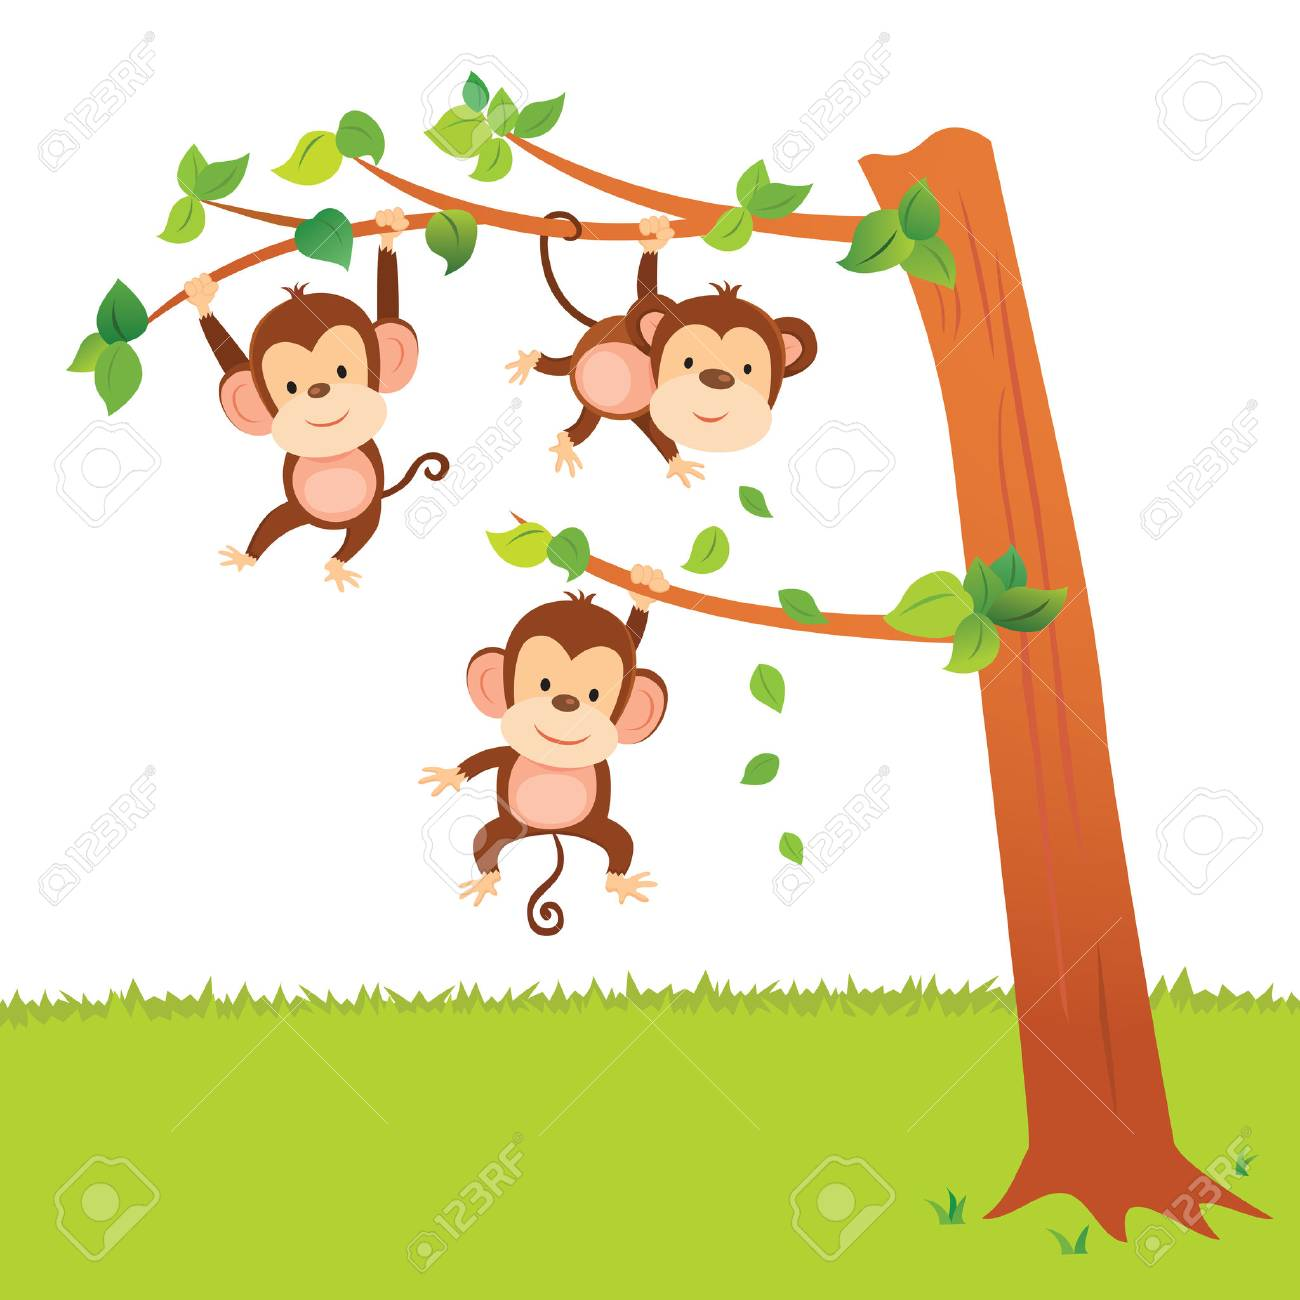 Monkeys Swinging In A Tree Have Fun Activities Royalty Free Cliparts Vectors And Stock Illustration Image 82974535 1000 cartoon monkey in tree free vectors on ai, svg, eps or cdr. monkeys swinging in a tree have fun activities